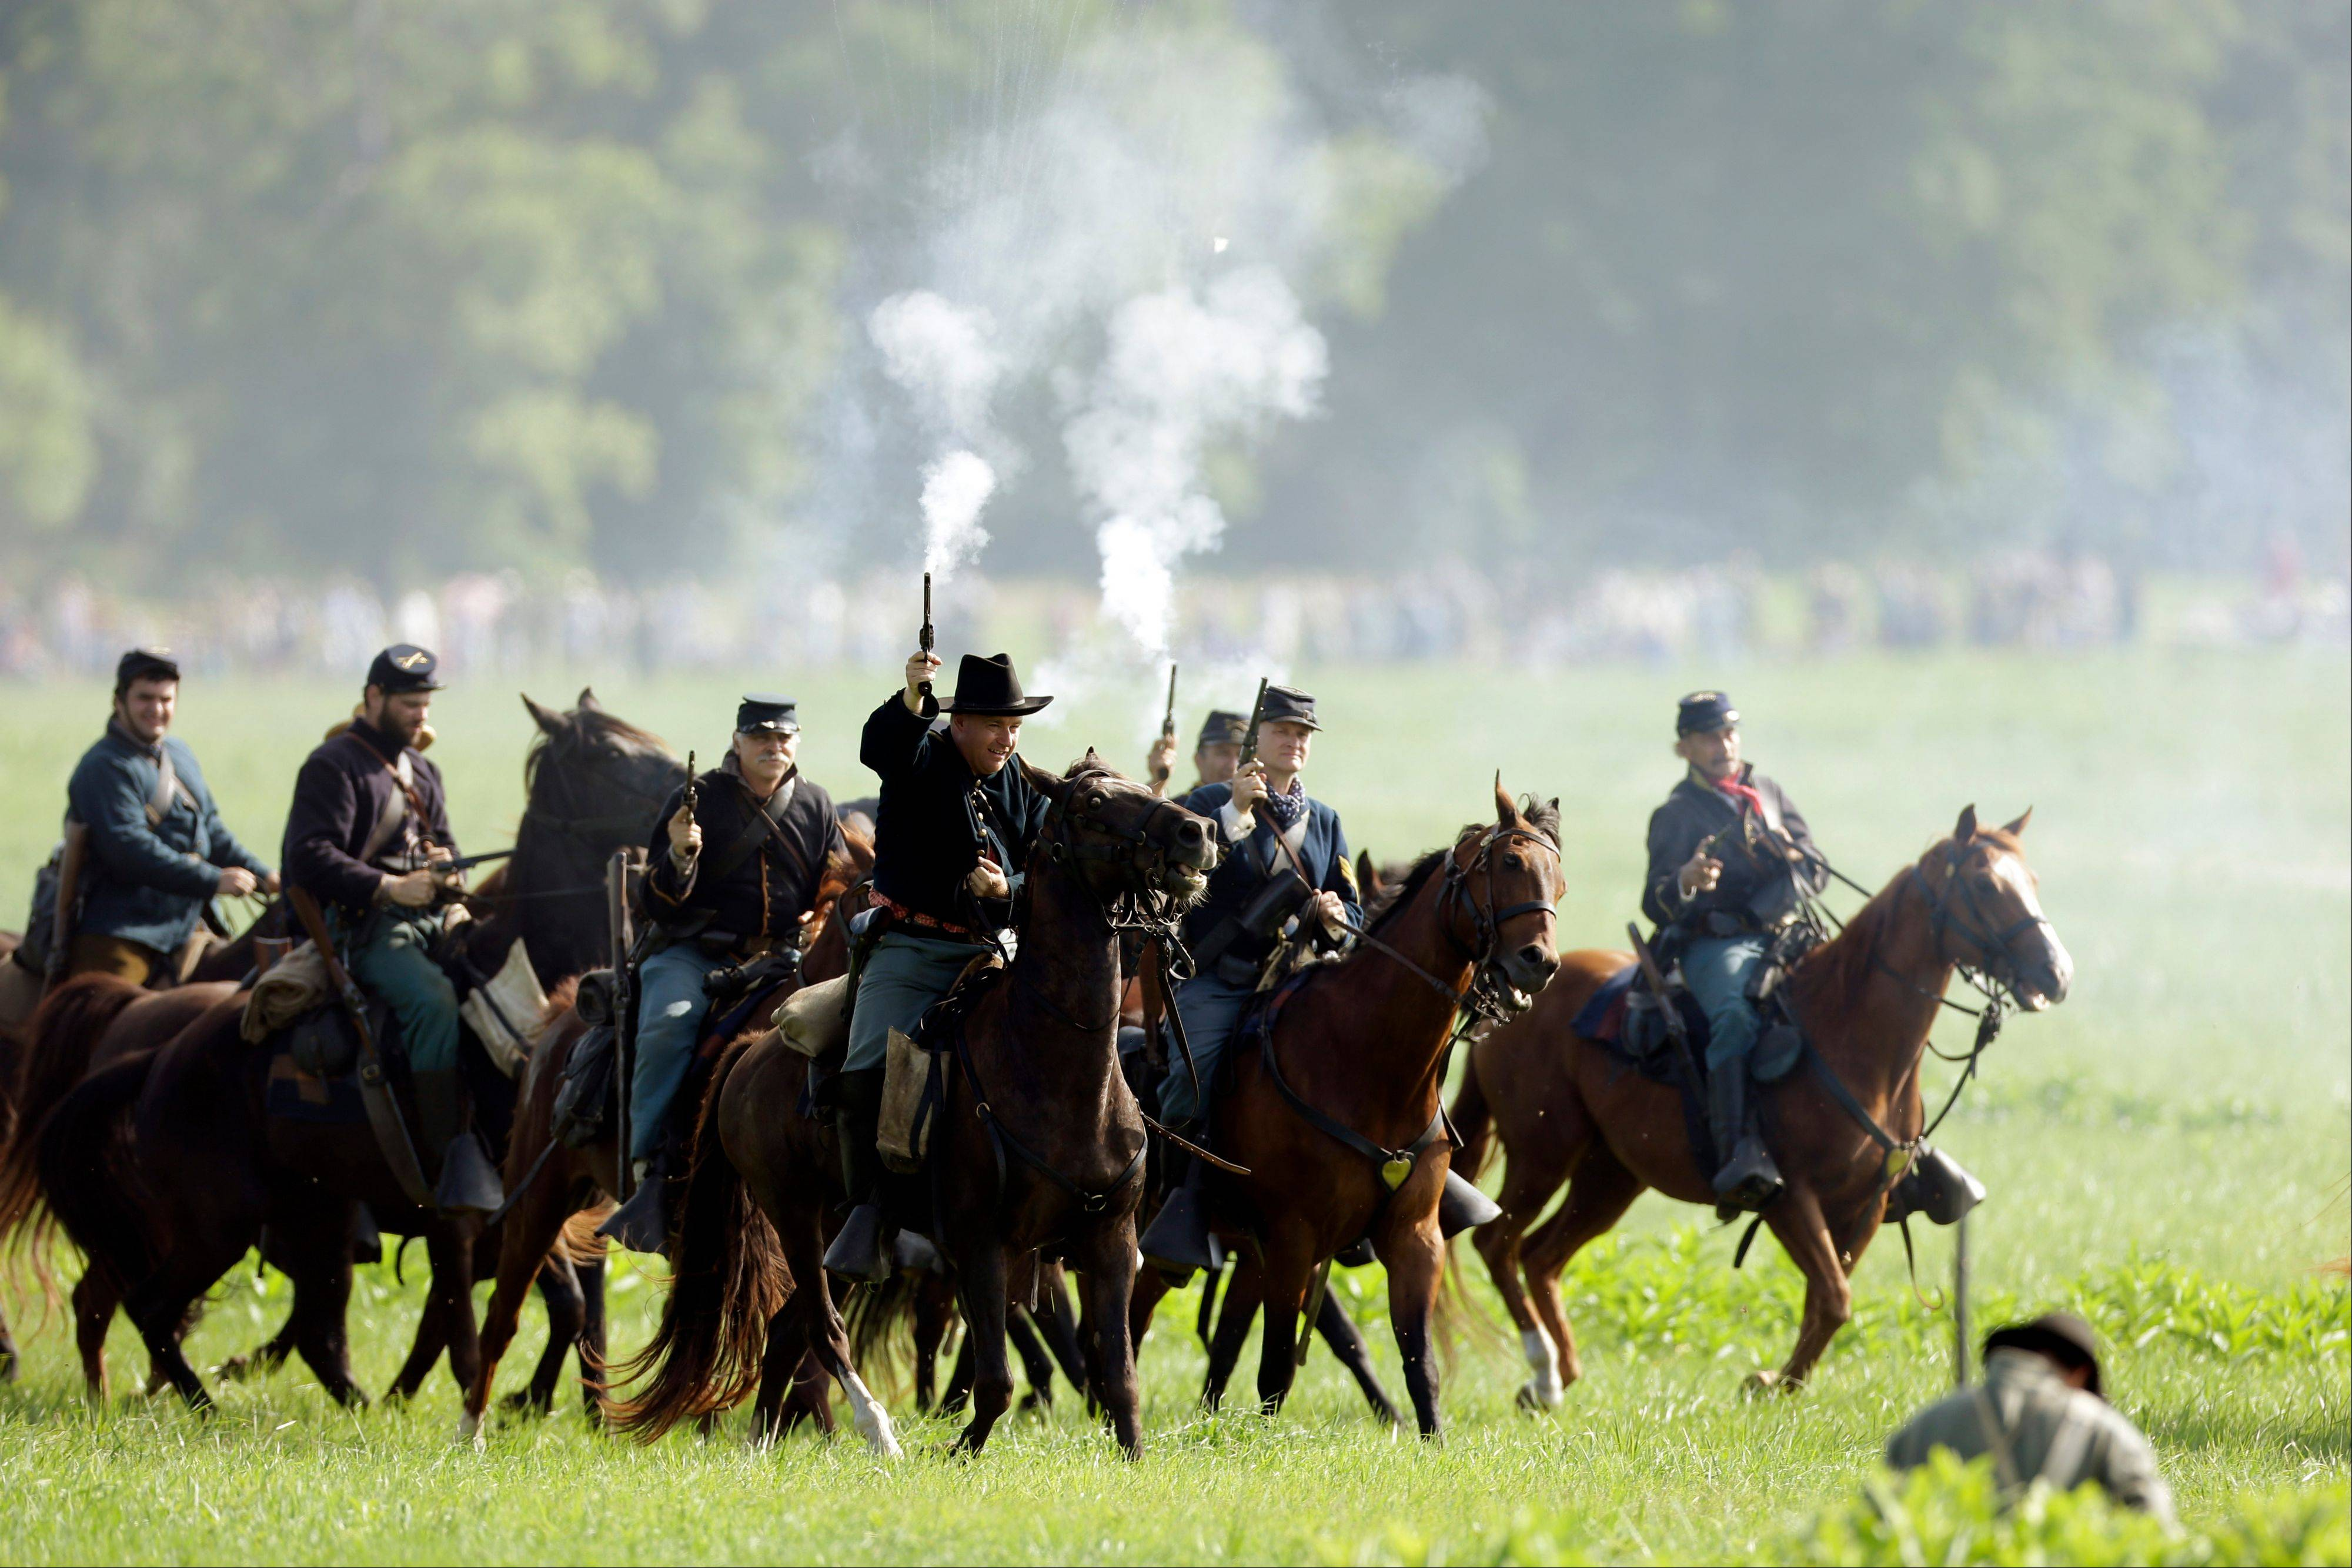 Mounted Union reenactors takes part in a demonstration of a battle during ongoing activities commemorating the 150th anniversary of the Battle of Gettysburg.